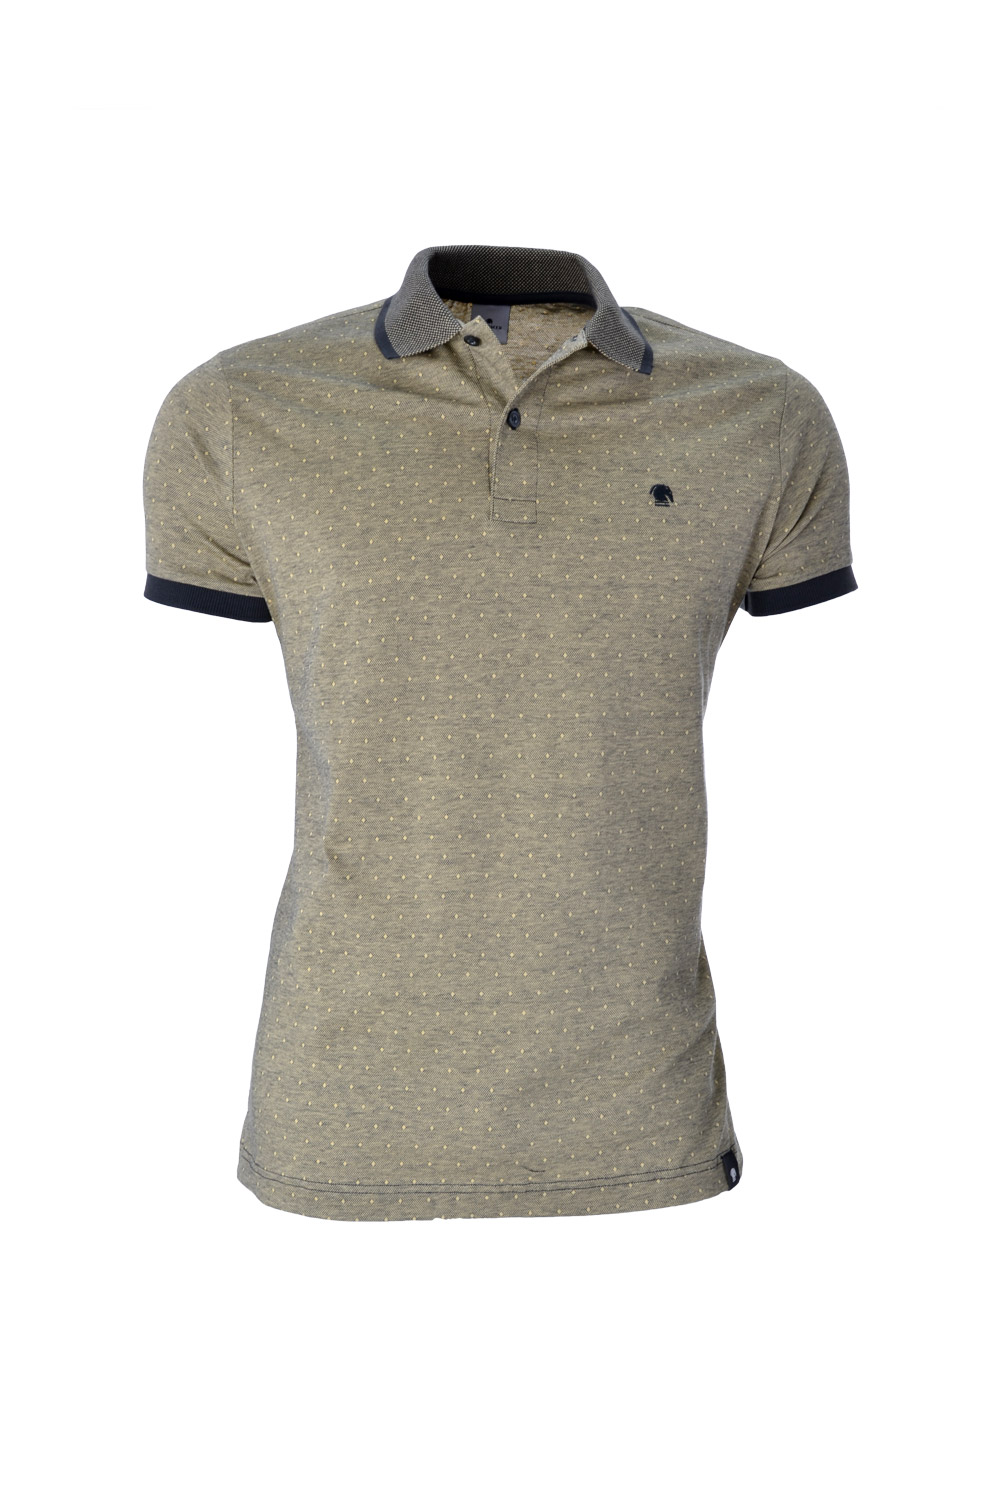 POLO MC CASUAL SLIM ALGODAO & ELASTANO STRETCH PIQUET BINADO AMARELO CLARO